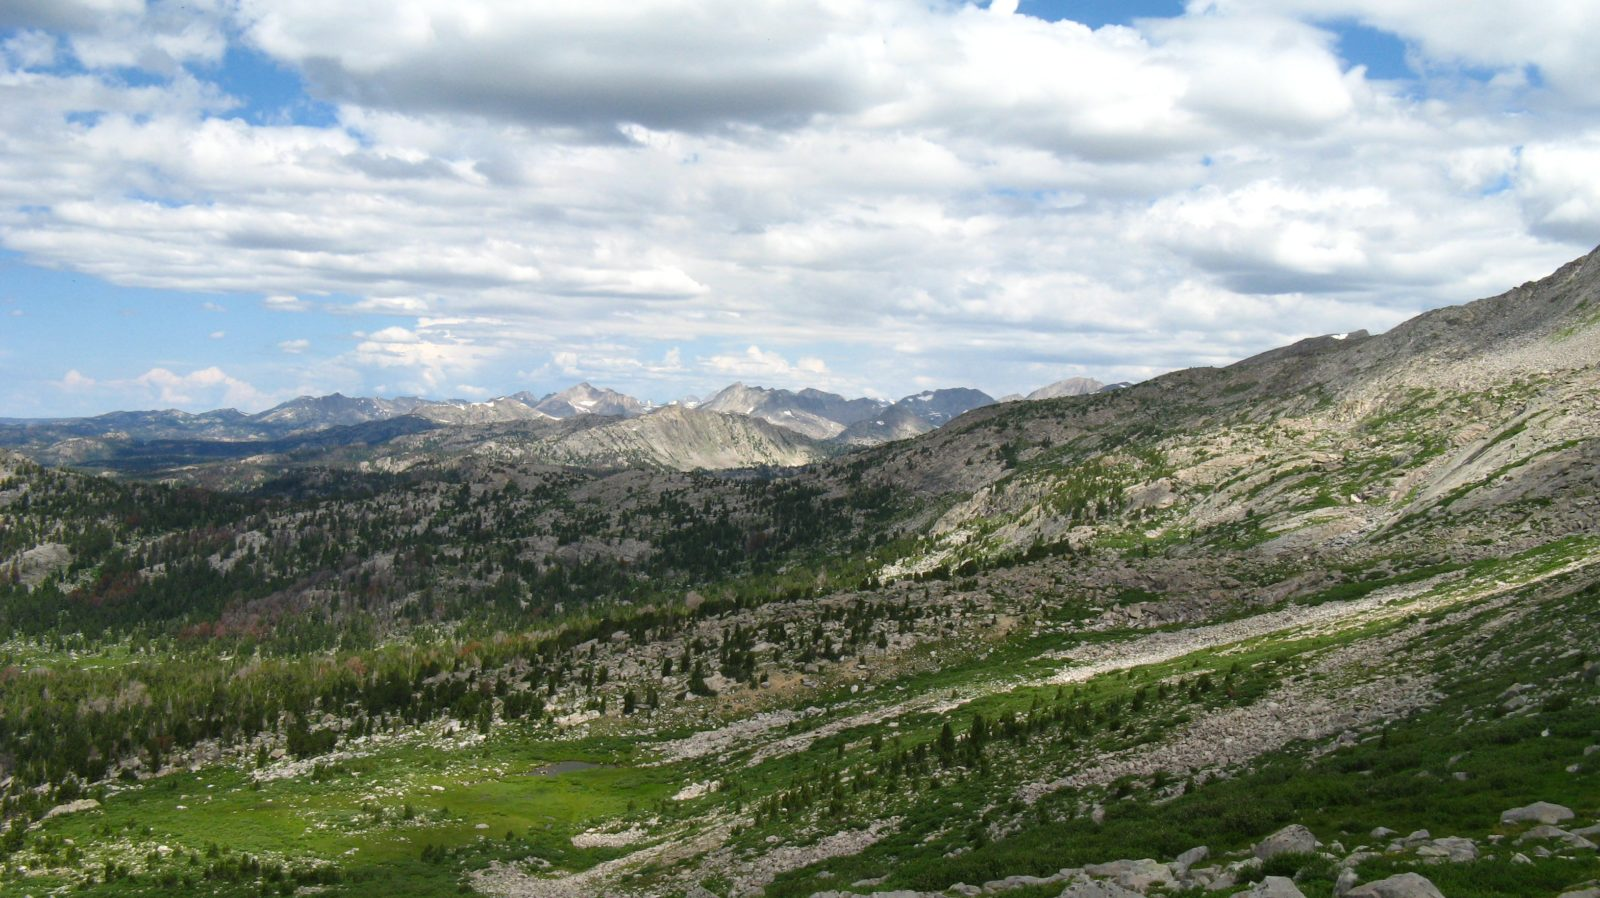 The high country of the Wind River Range